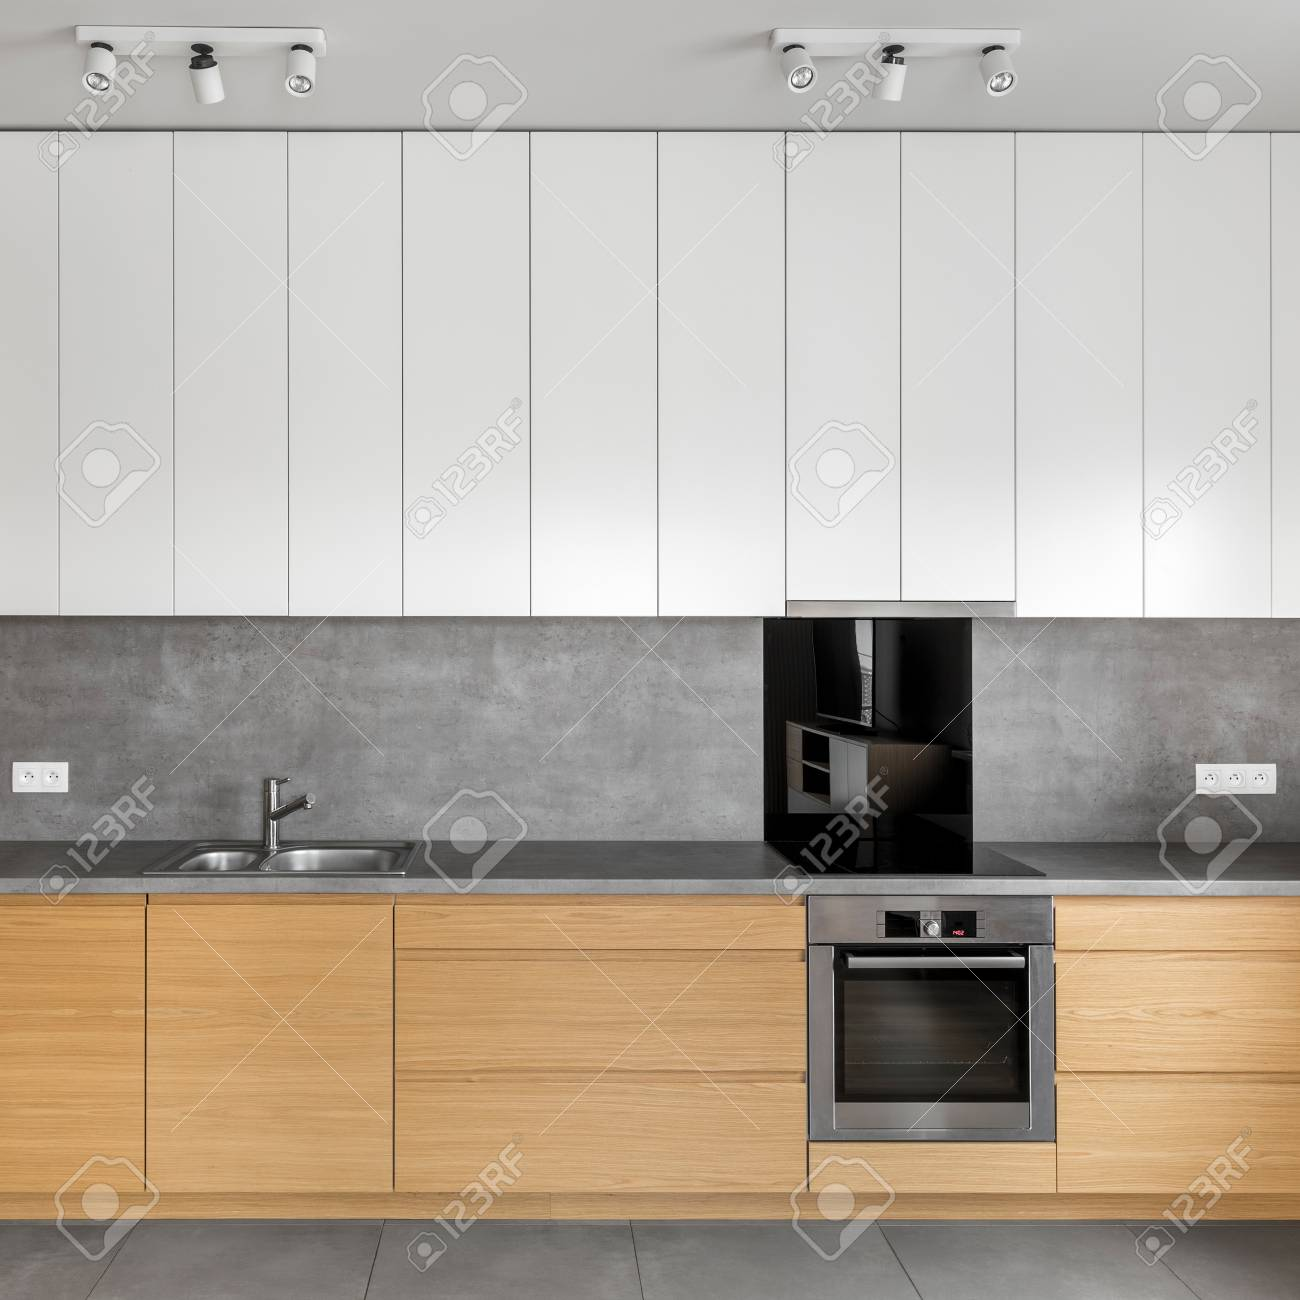 - Grey Kitchen With Wooden Cabinets, Granite Worktop And White